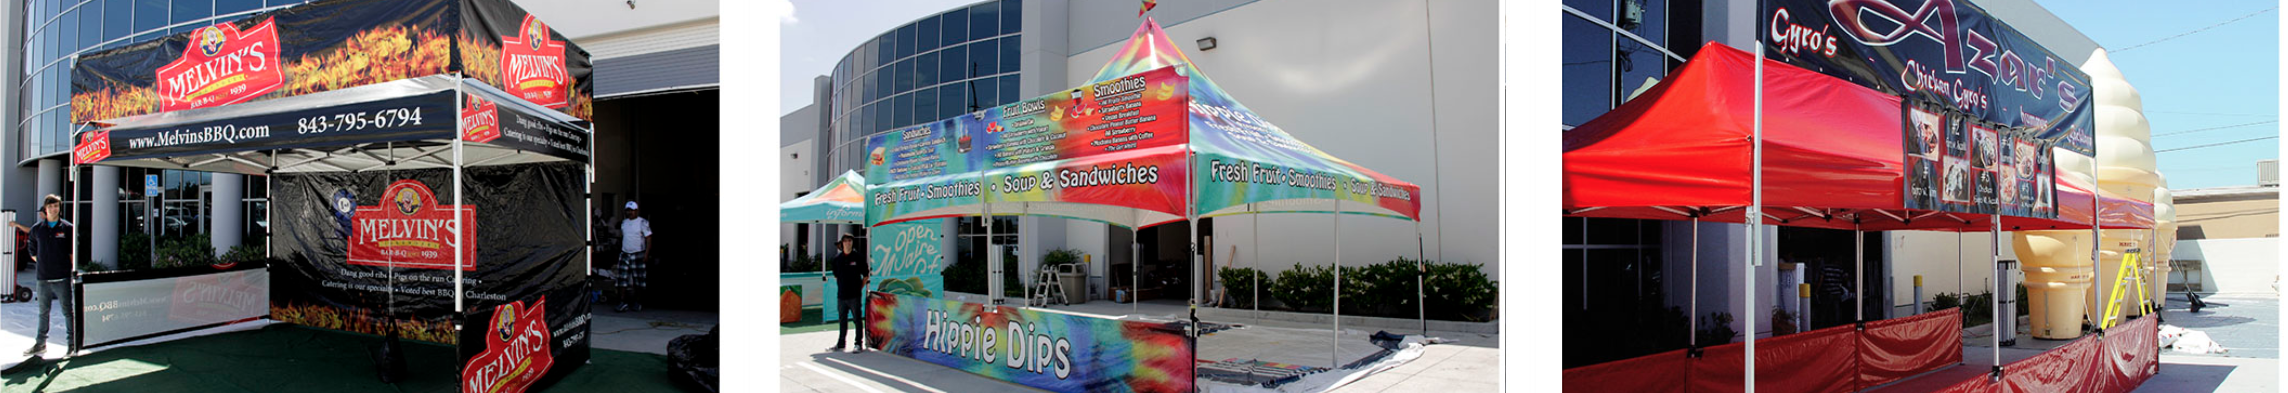 collage of multiple images with a canopy banner sign